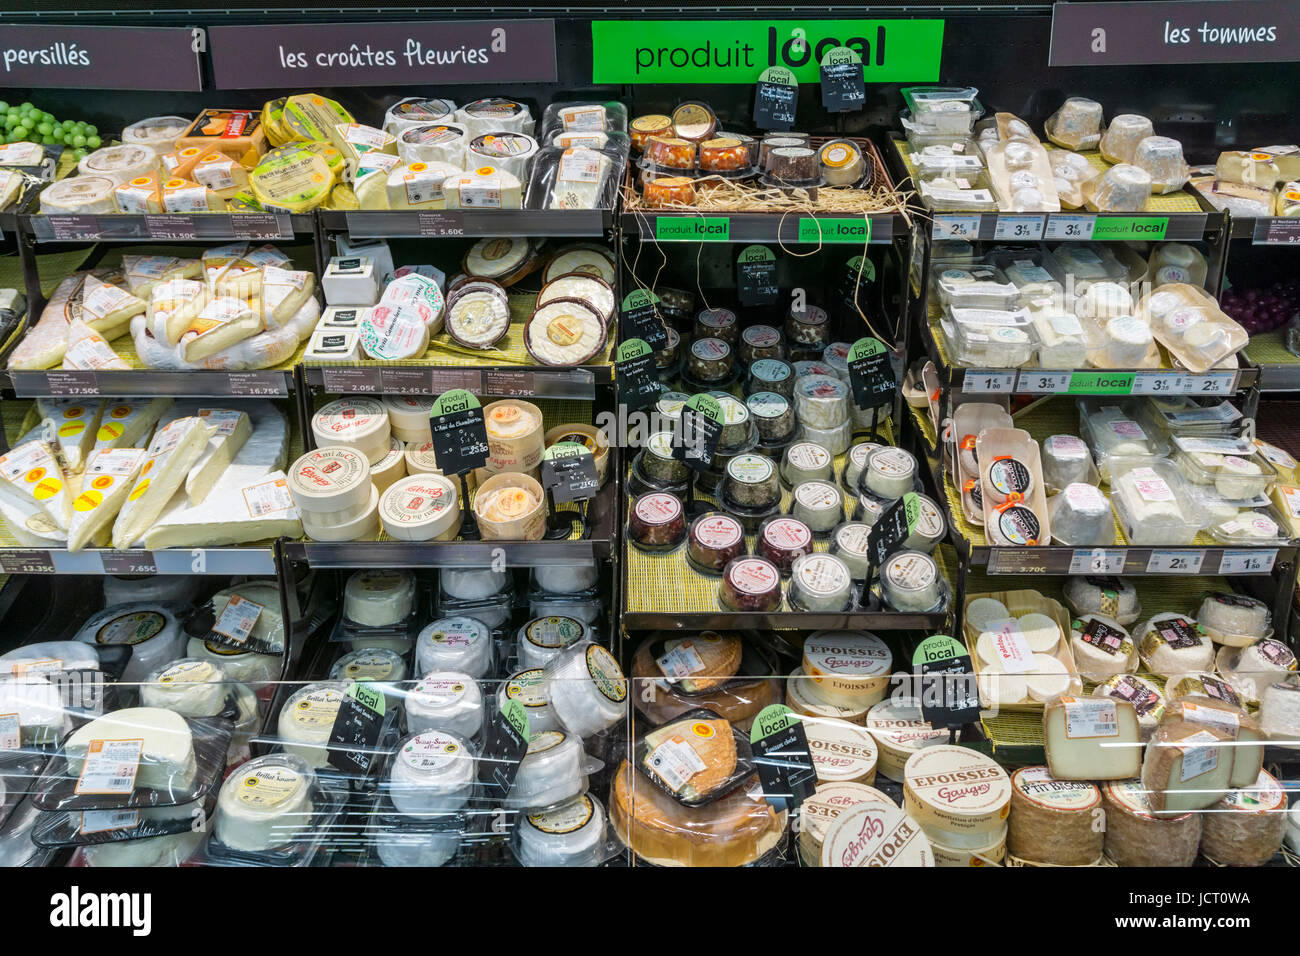 Locally produced cheese for sale in a French supermarket under a Produit Local sign - Stock Image